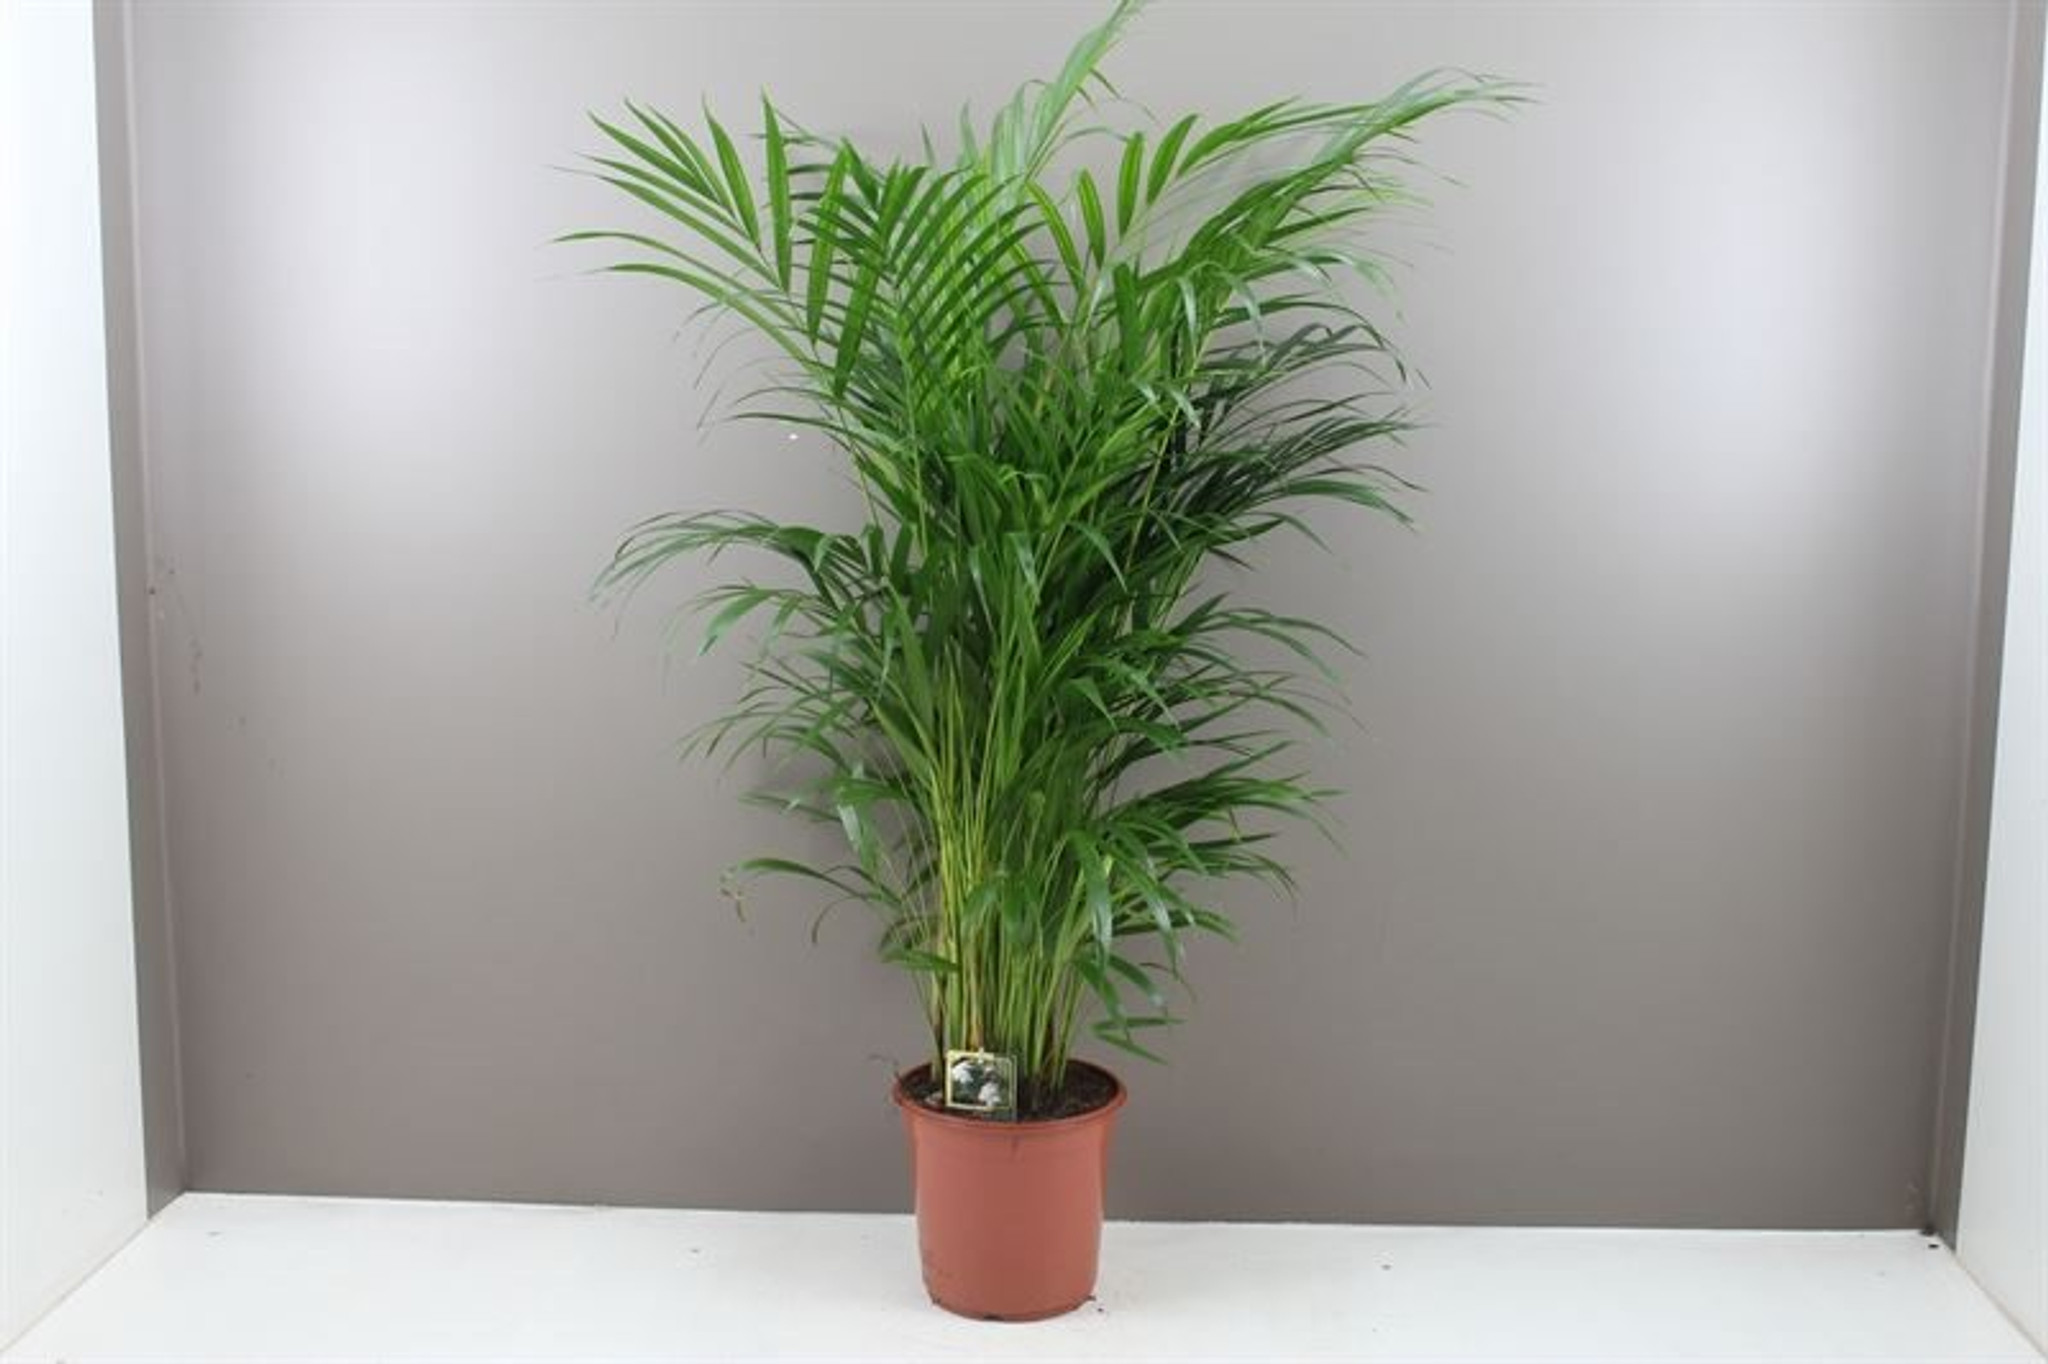 Areca Dypsis lutescens, Chrysalidocarpus lutescens, butterfly palm, bamboo palm, golden cane palm, dypsis genus, Arecaeae, large indoor palms, green indoor plants, office palm, air cleaning